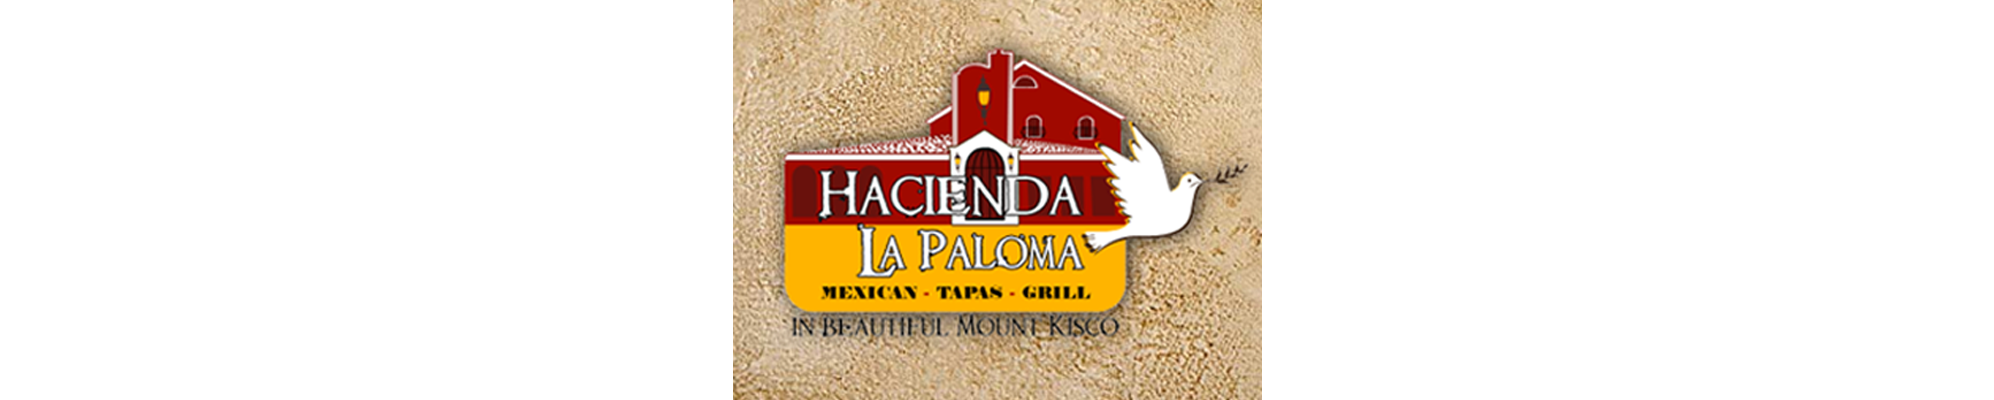 The name Hacienda La